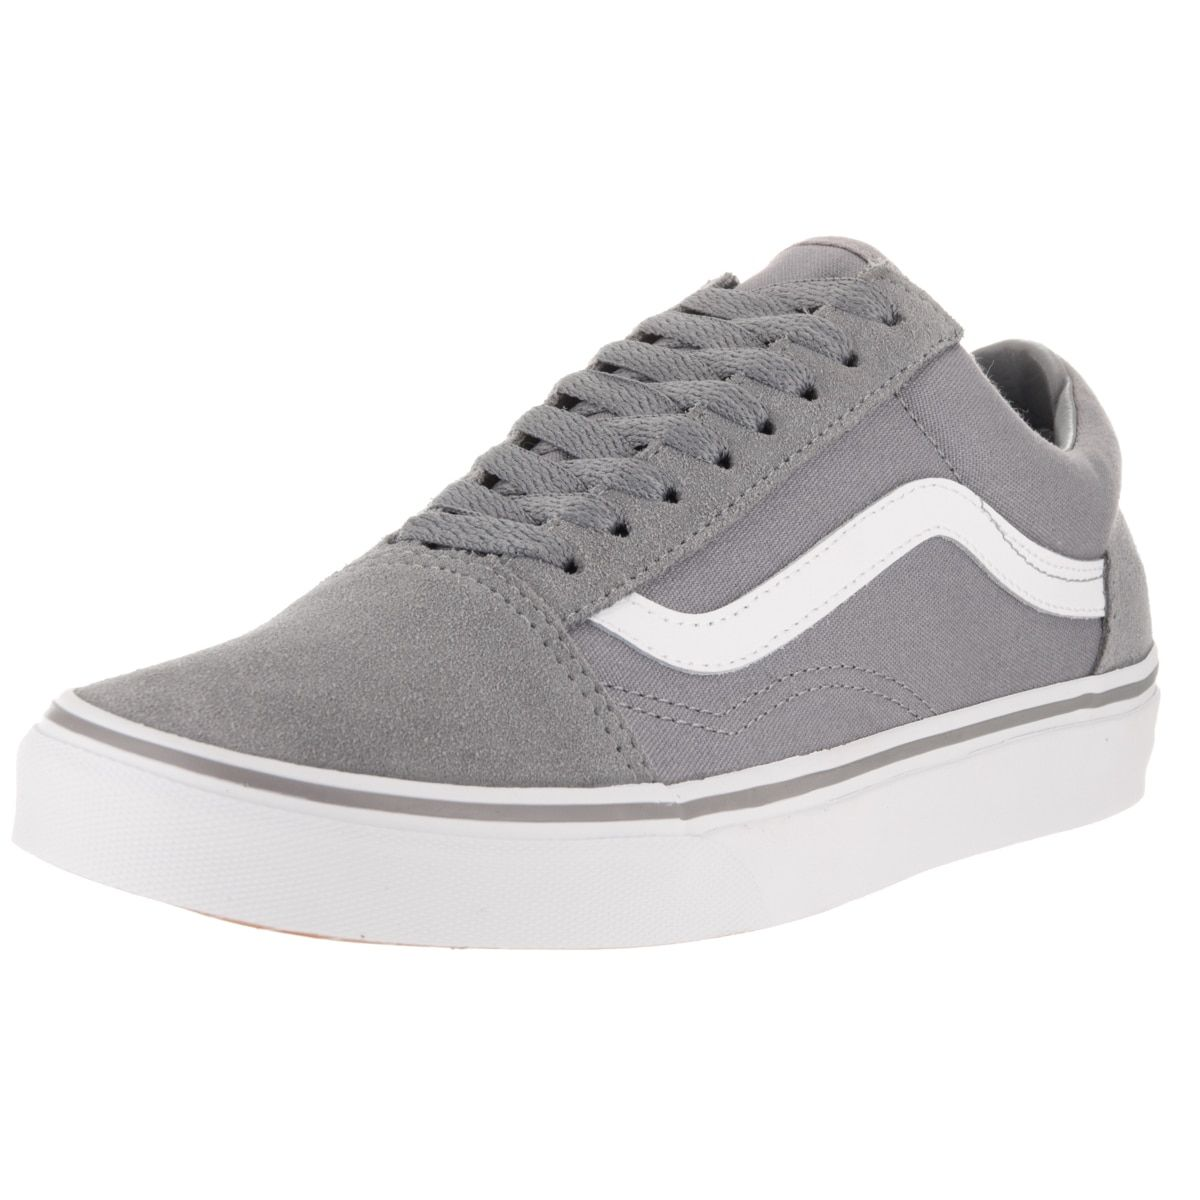 Online Shopping Bedding Furniture Electronics Jewelry Clothing More Vans Old Skool Gray Leather Shoes Woman Vans Shoes